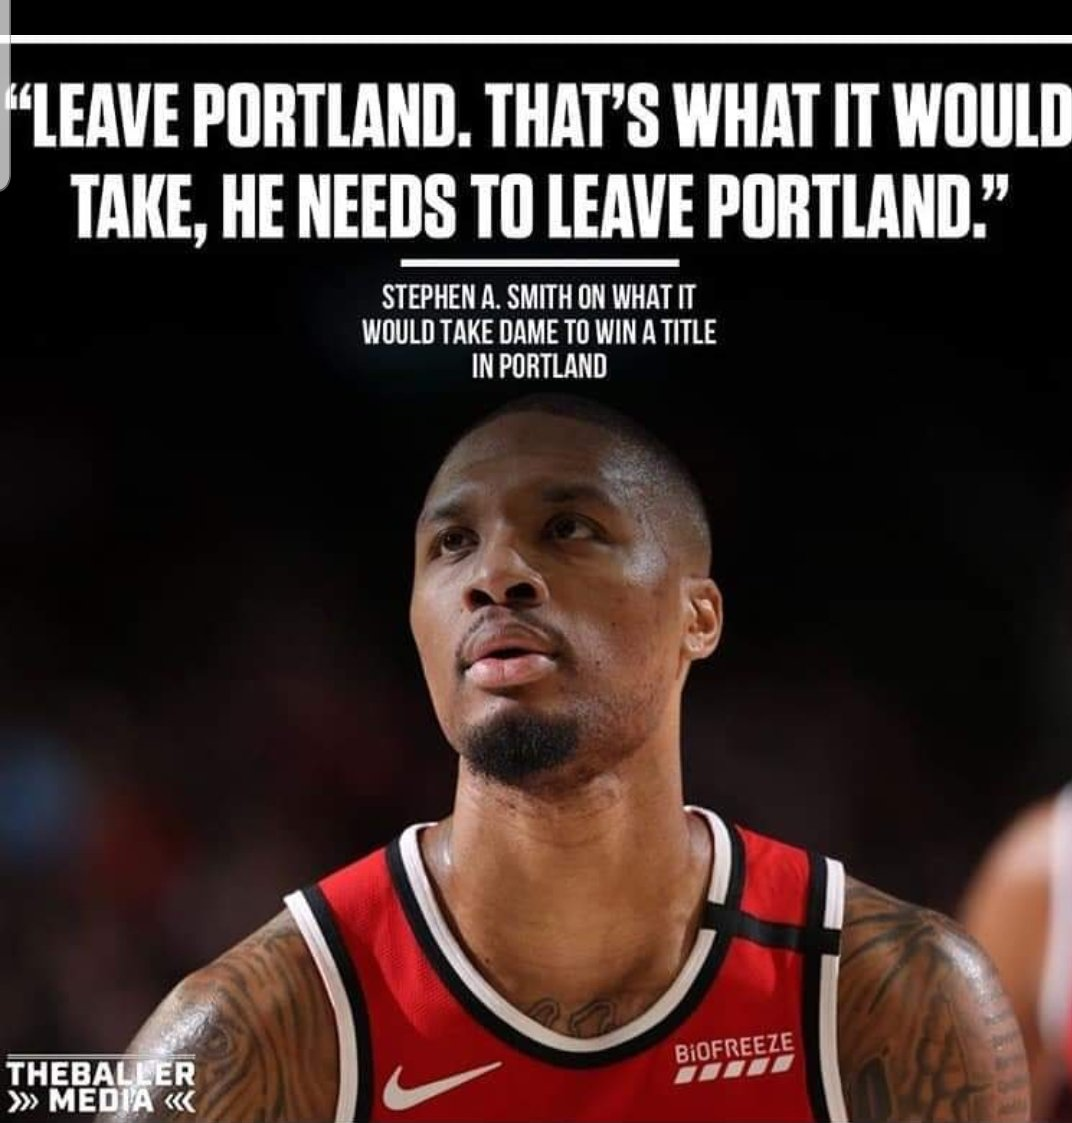 Prove everyone wrong prove Family loyalty respect wins all @trailblazers @PaniniAmerica @Dame_Lillard @bosnianbeast27 @CJMcCollum @TerryStotts2 @NBCSNorthwest blazers rip city #familyloyaltyrespect - bloodline family-pic.twitter.com/8fC3bY8fVO